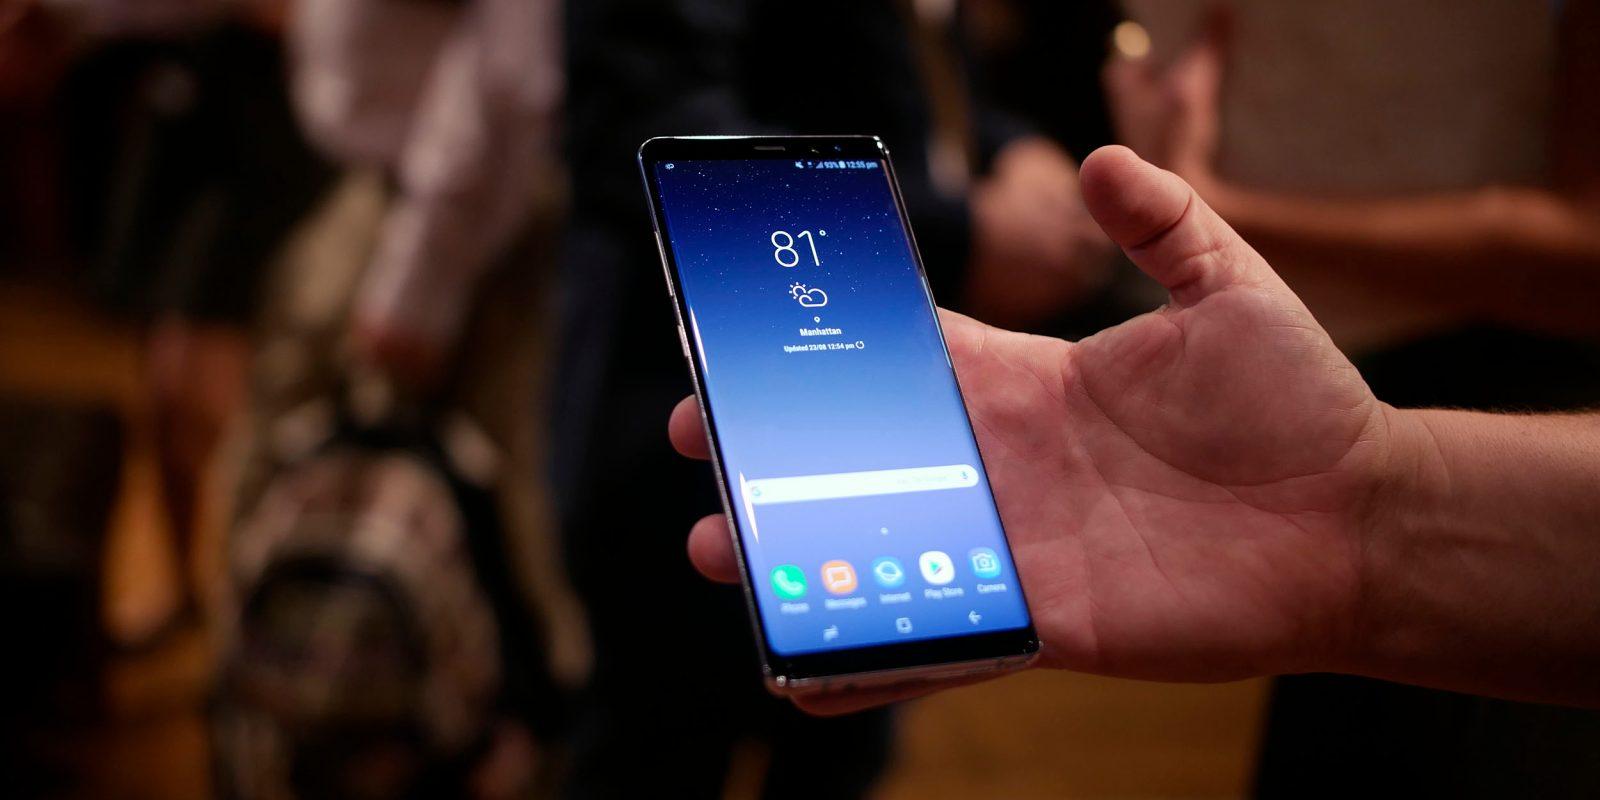 Samsung Galaxy Note 8: Display tests reveal record-breaking